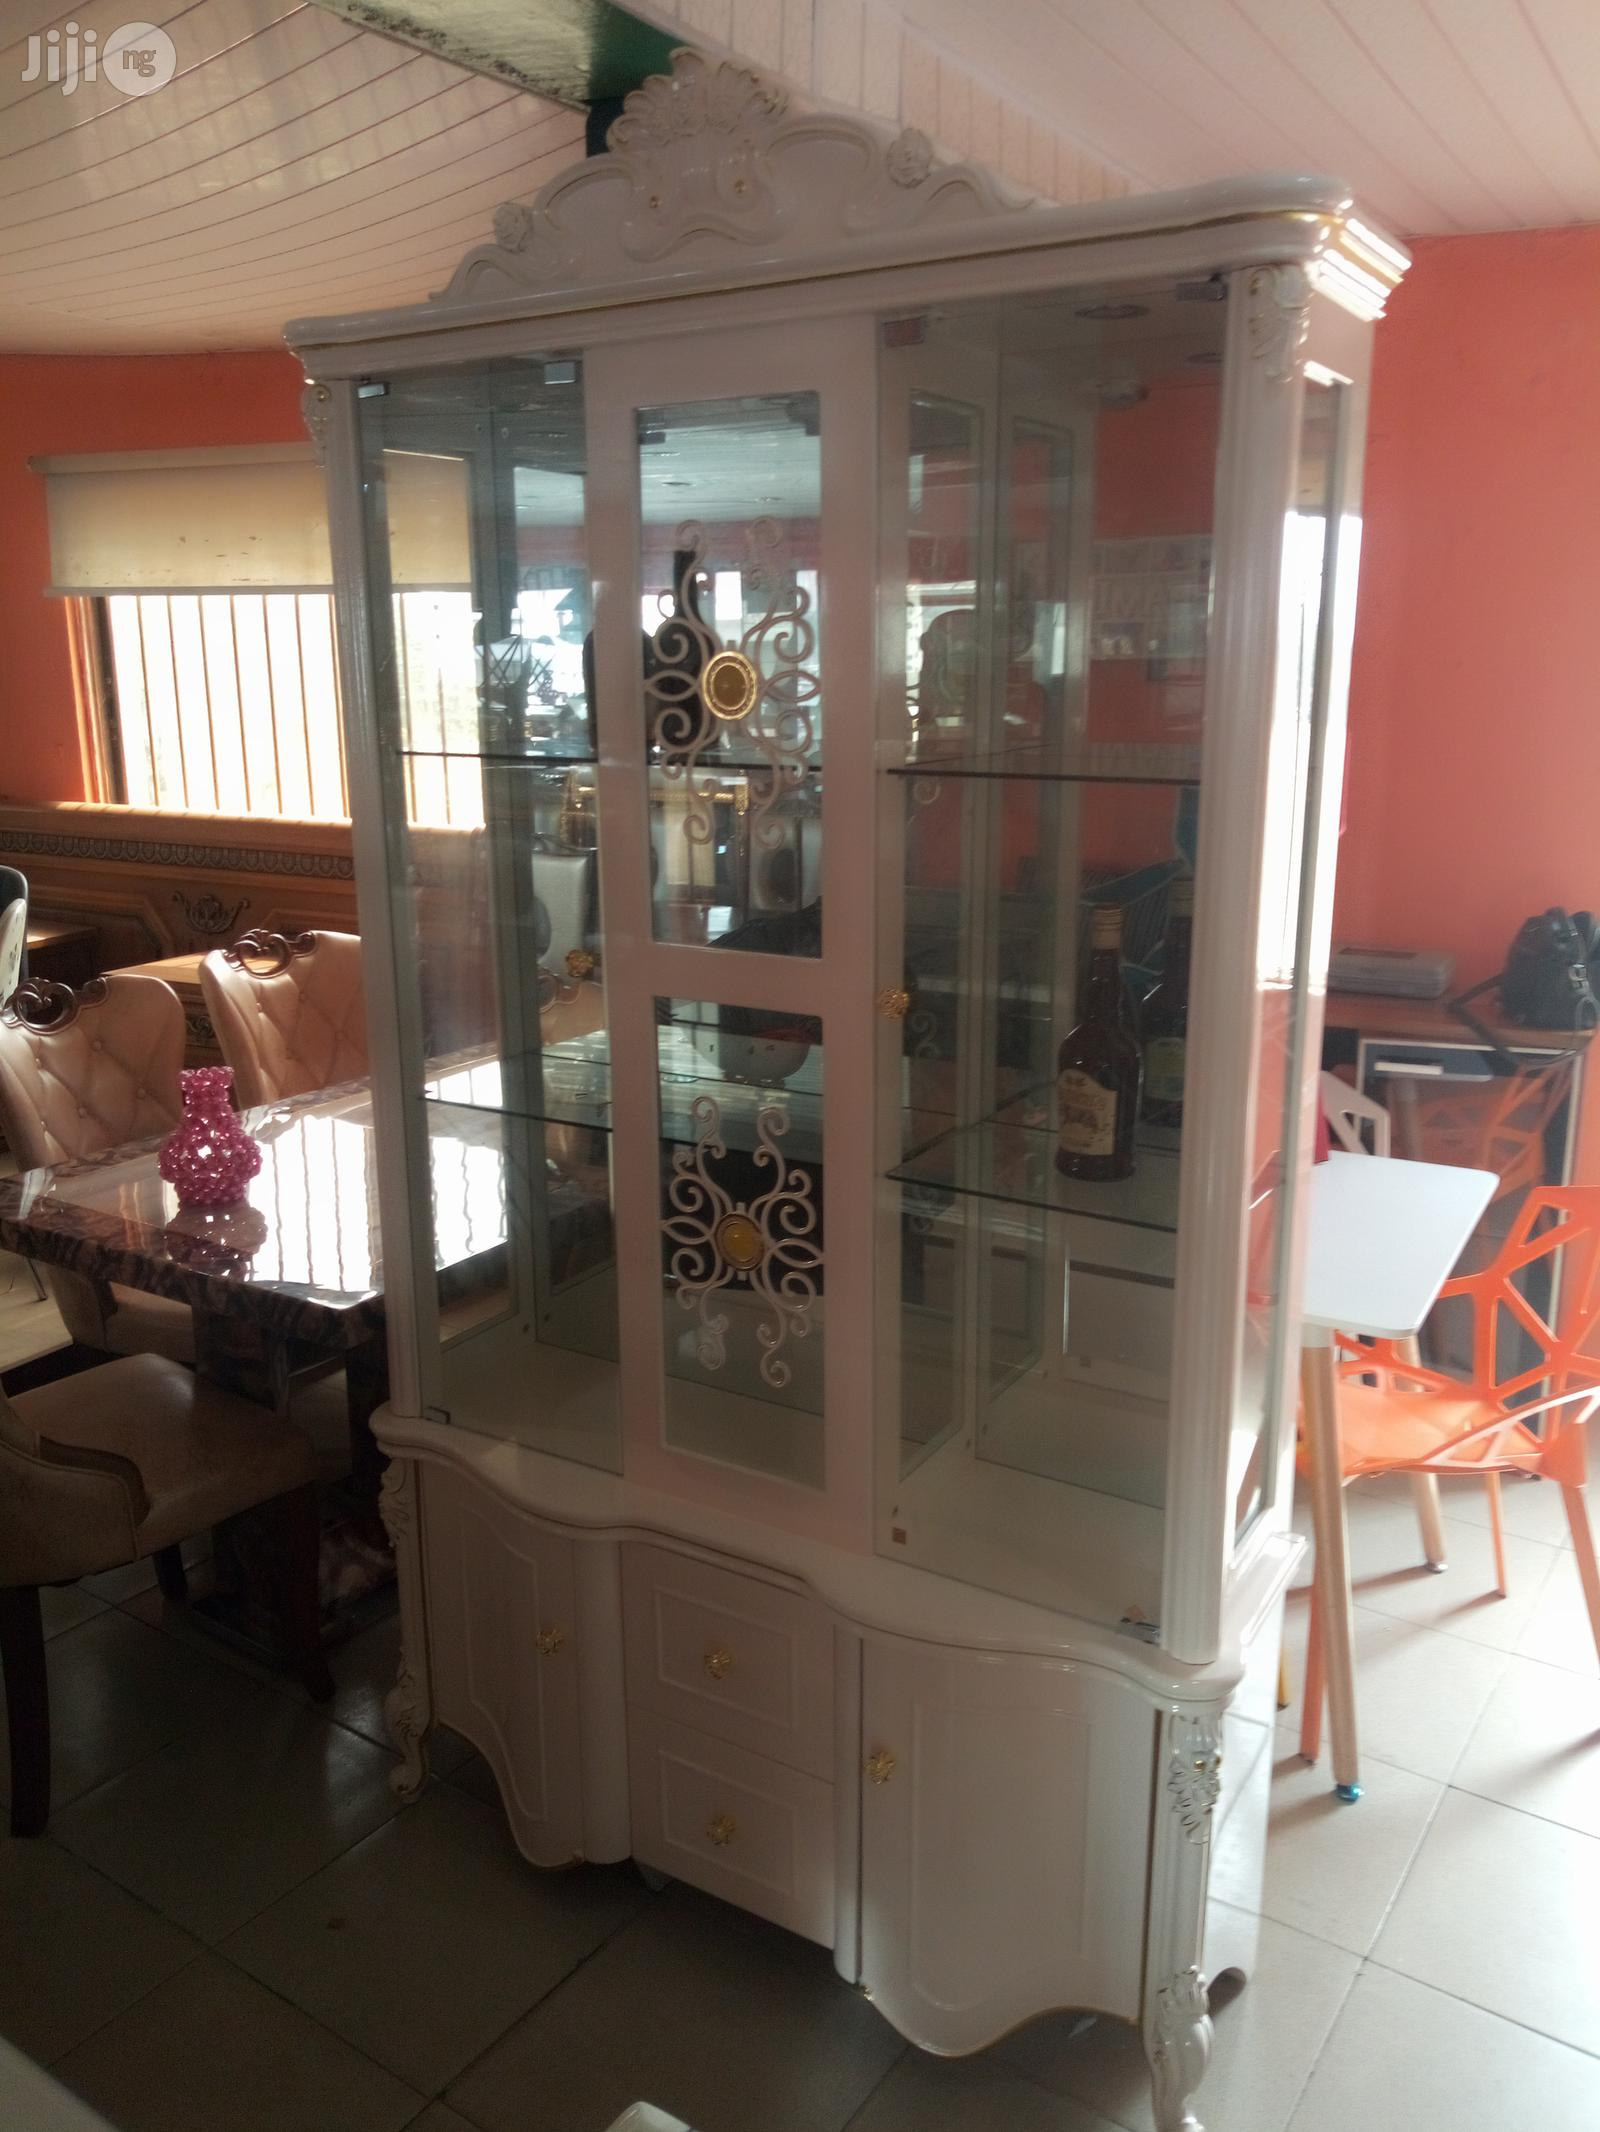 Brand New Executive Royal White Wine Bar Imported | Furniture for sale in Victoria Island, Lagos State, Nigeria